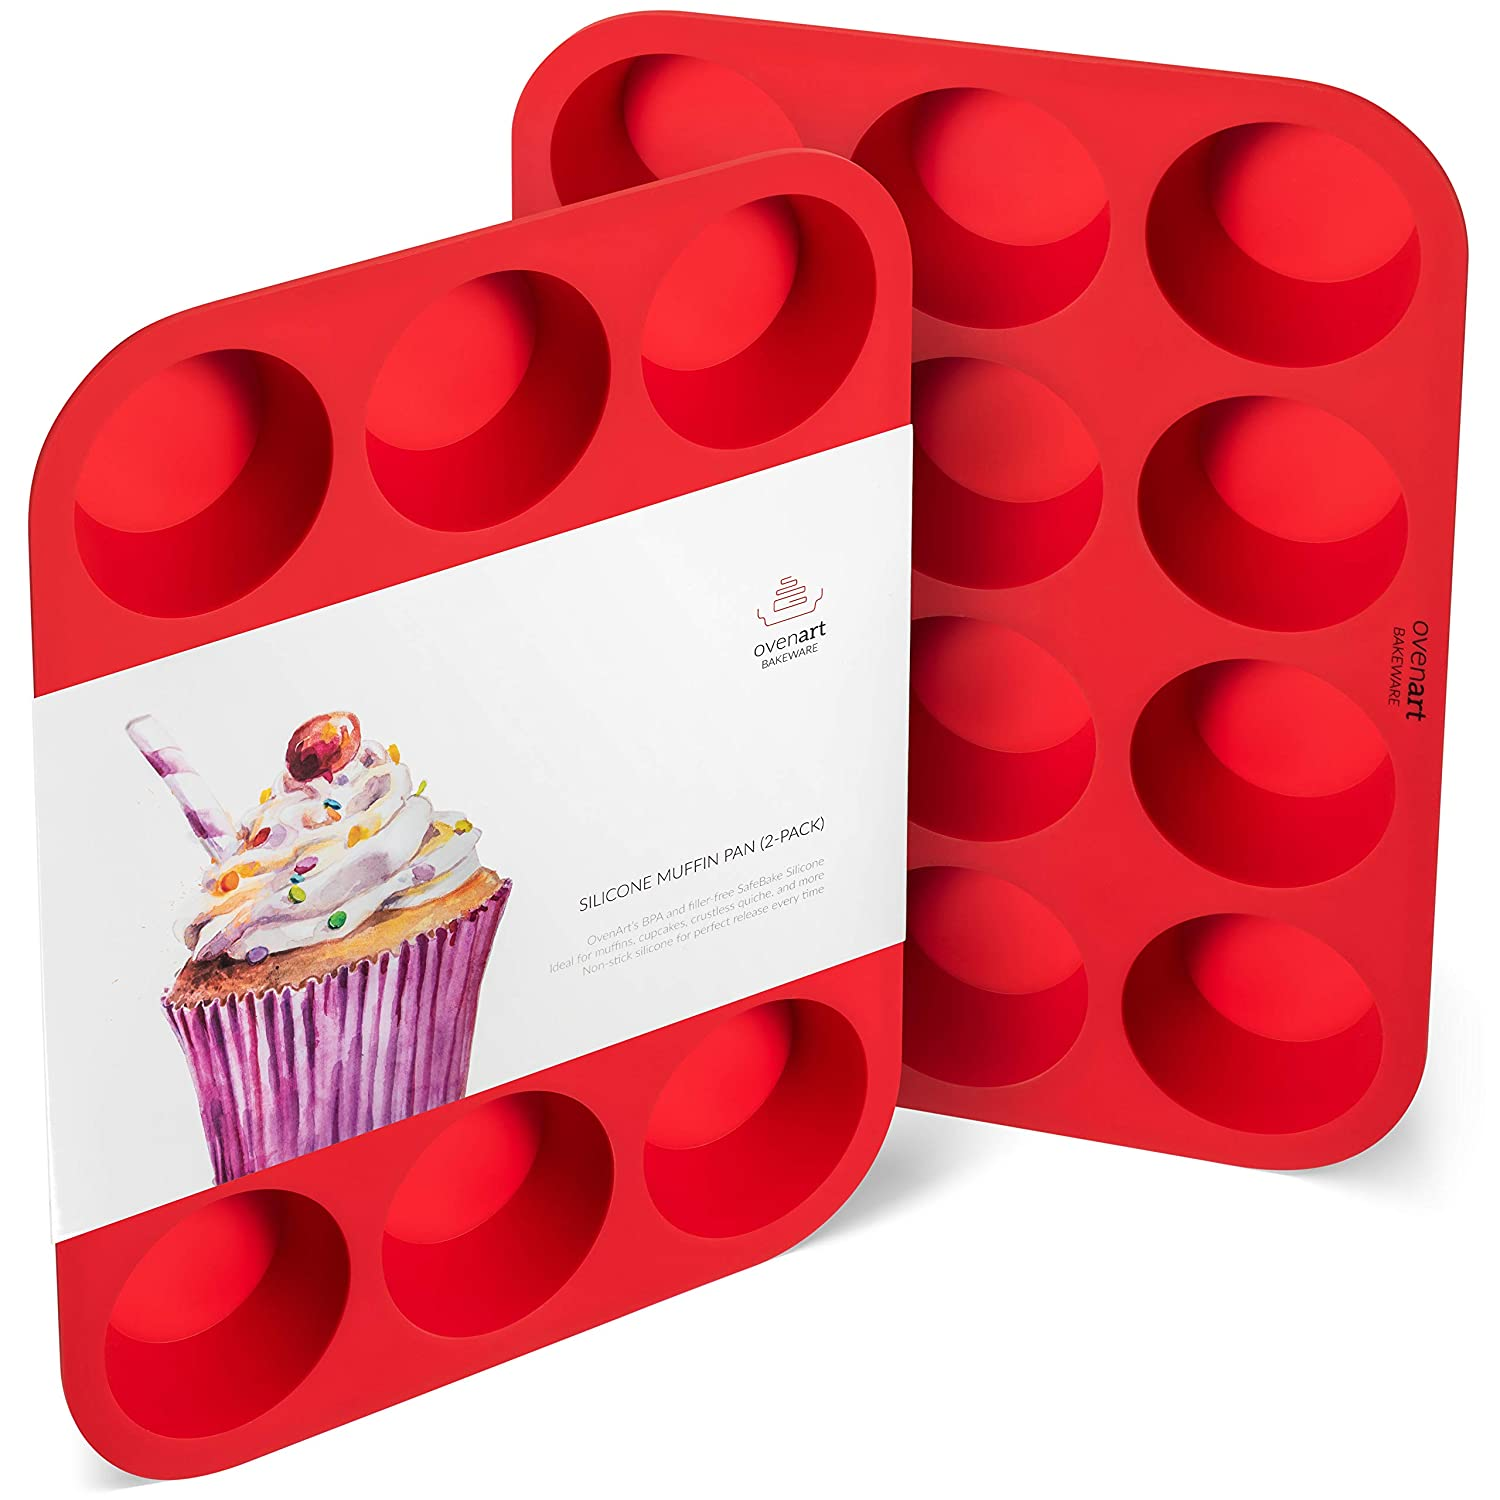 OvenArt Bakeware European LFGB Silicone Muffin Pan, 12-Cup, Red, 2-Pack